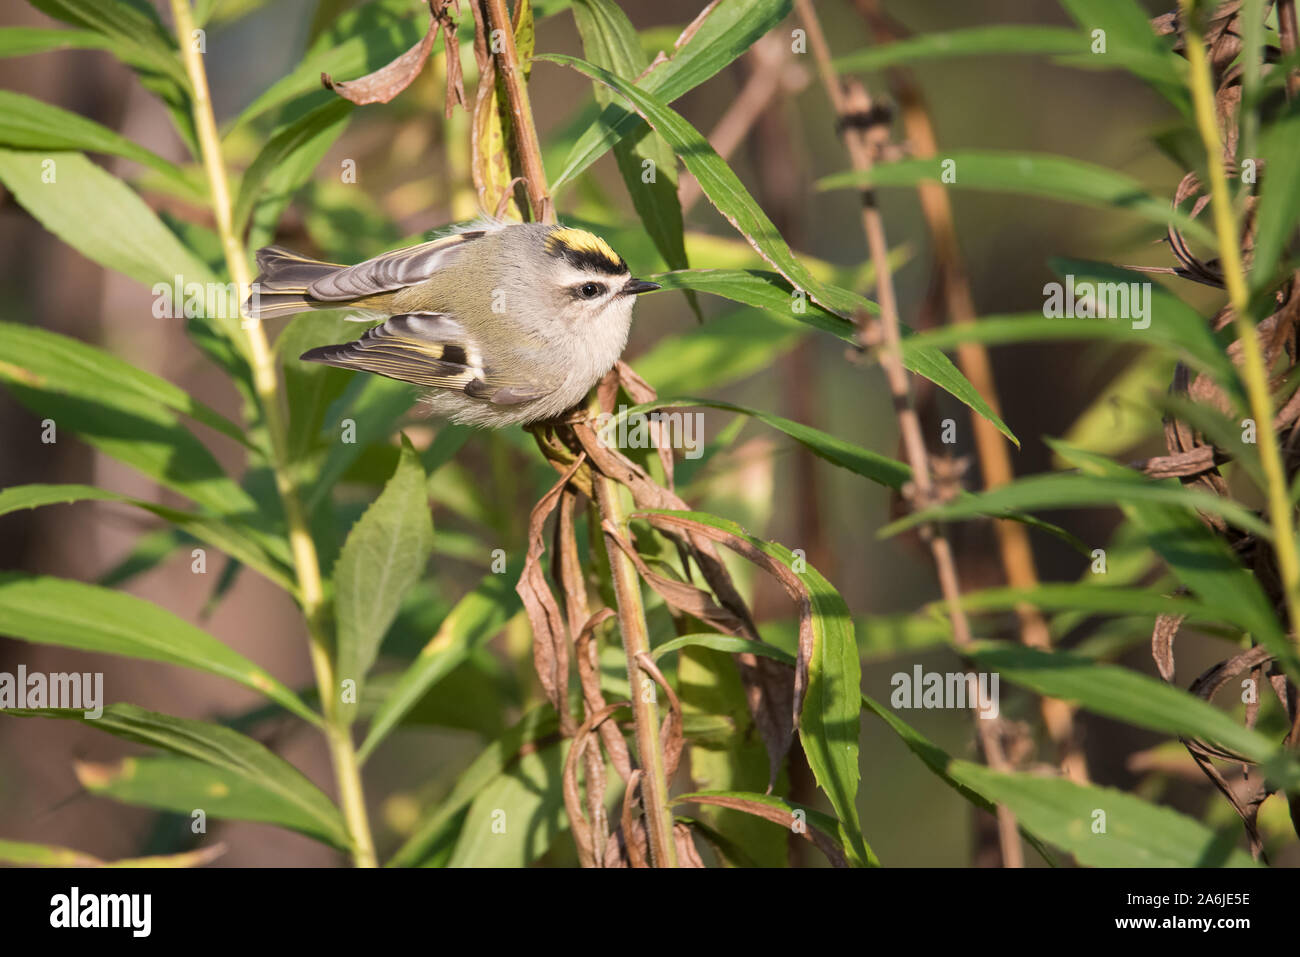 A Golden-crowned Kinglet forages for a meal among some goldenrod at Toronto, Ontario's popular Ashbridges Bay Park during fall migration. Stock Photo